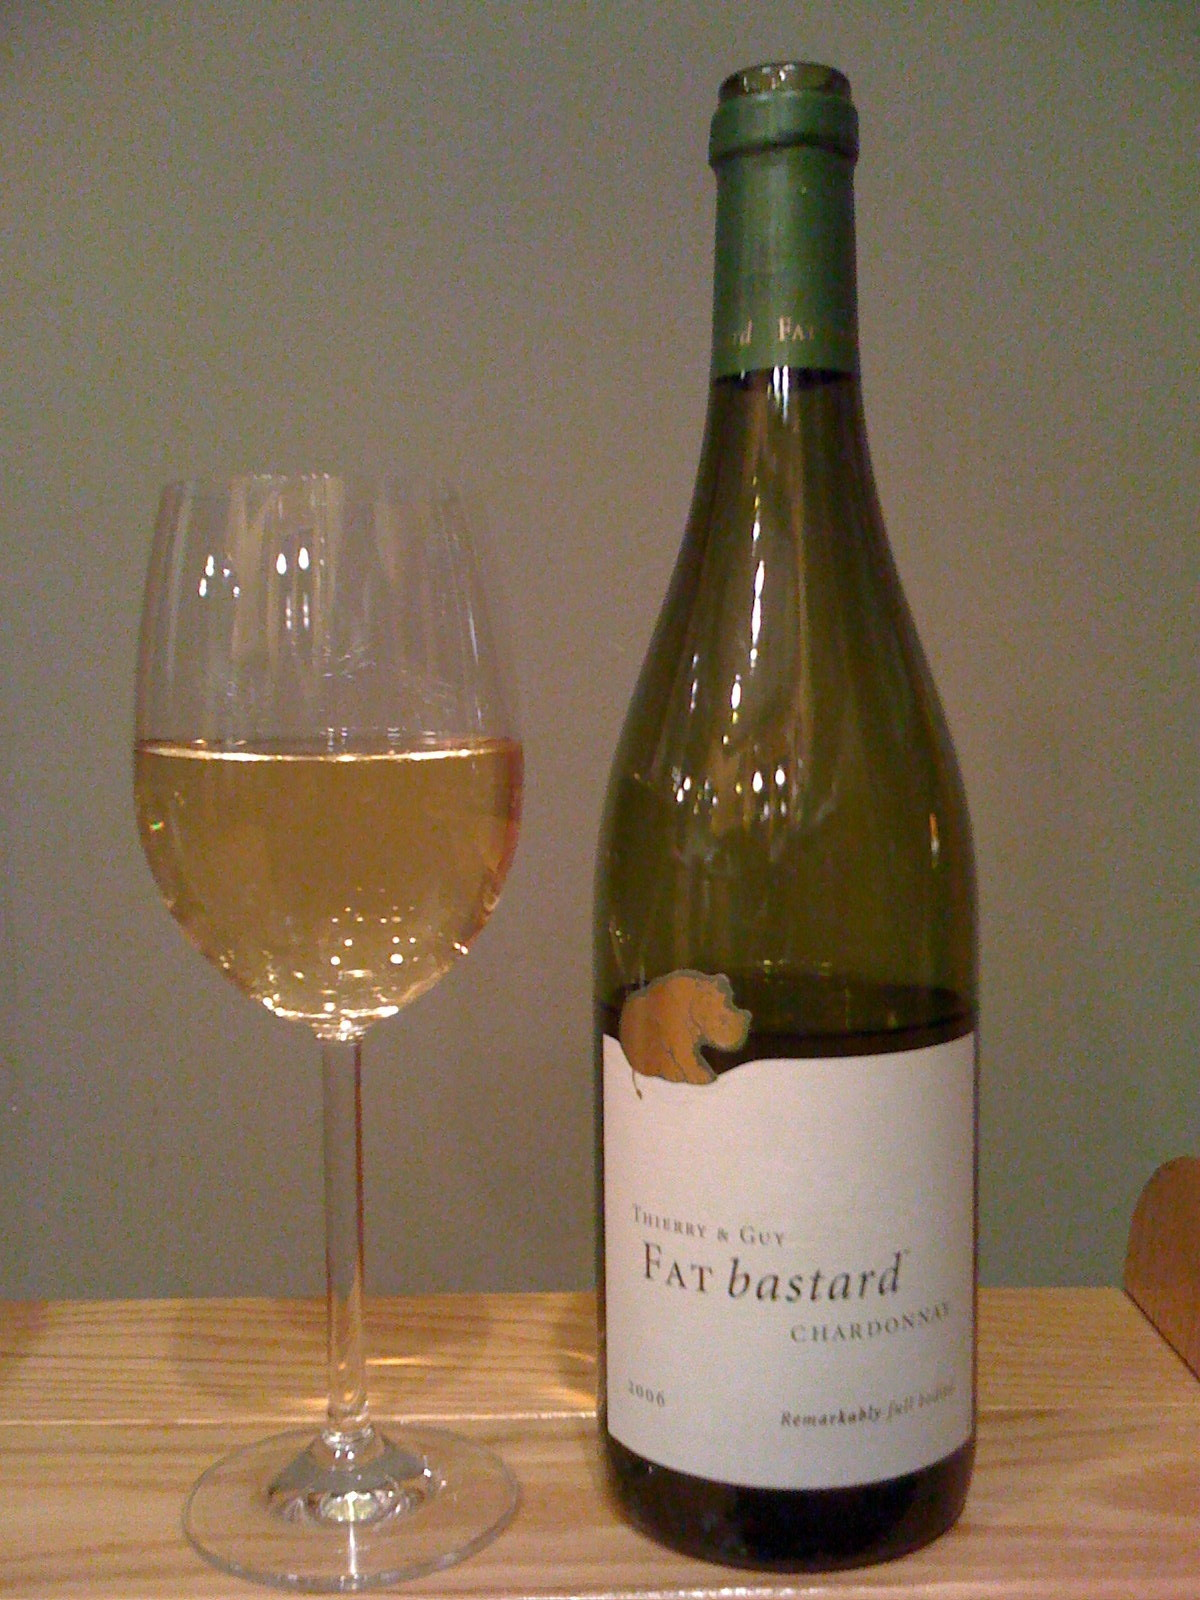 Thierry and Guy Shiraz Vin de Pays d'Oc Fat Bastard (2006)